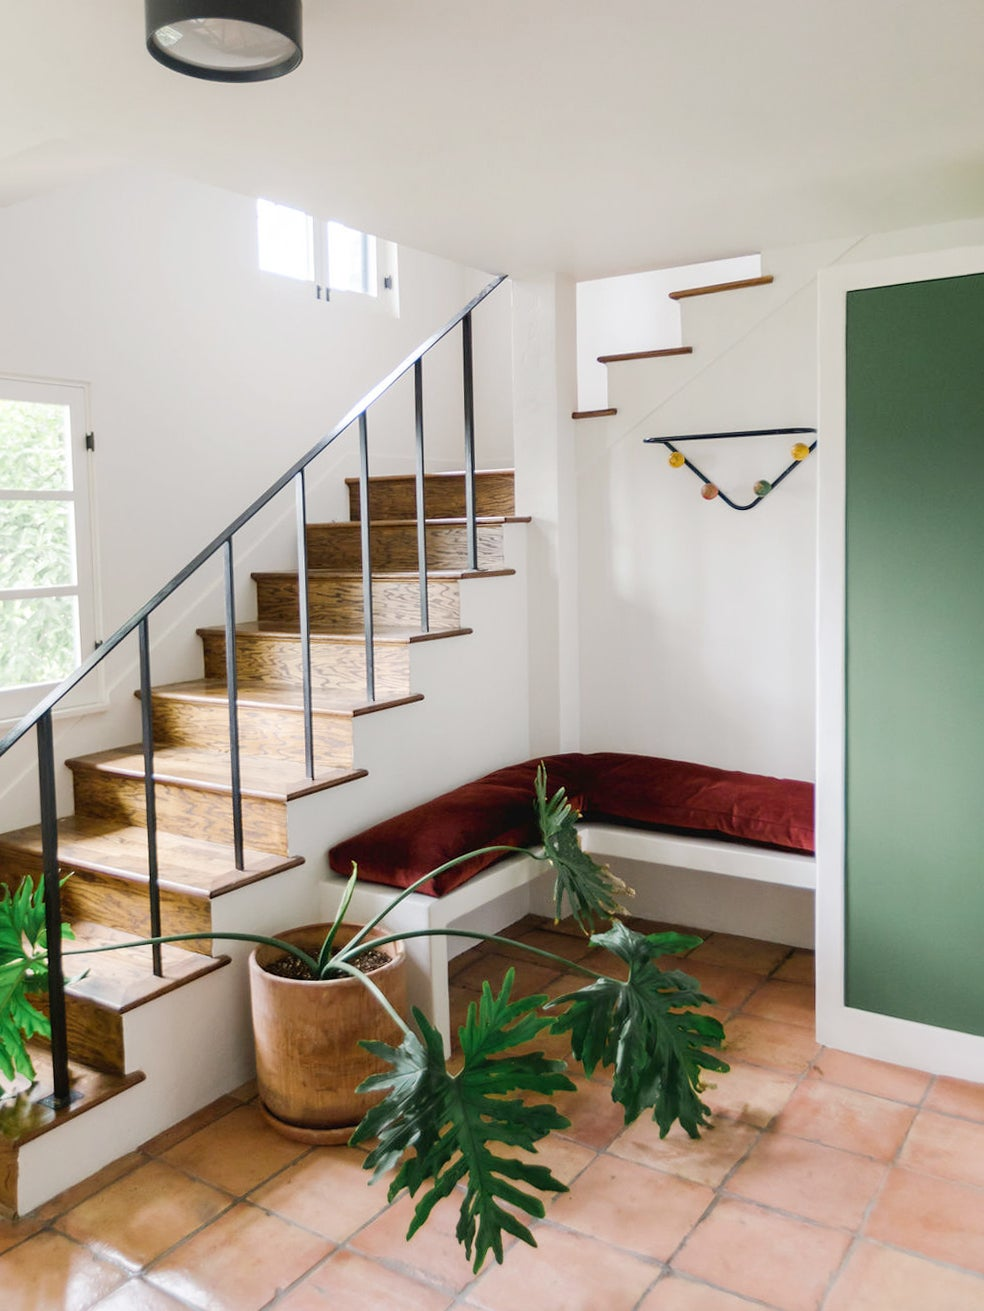 00-FEATURE-Entryway-Plaster-Built-Ins-domino